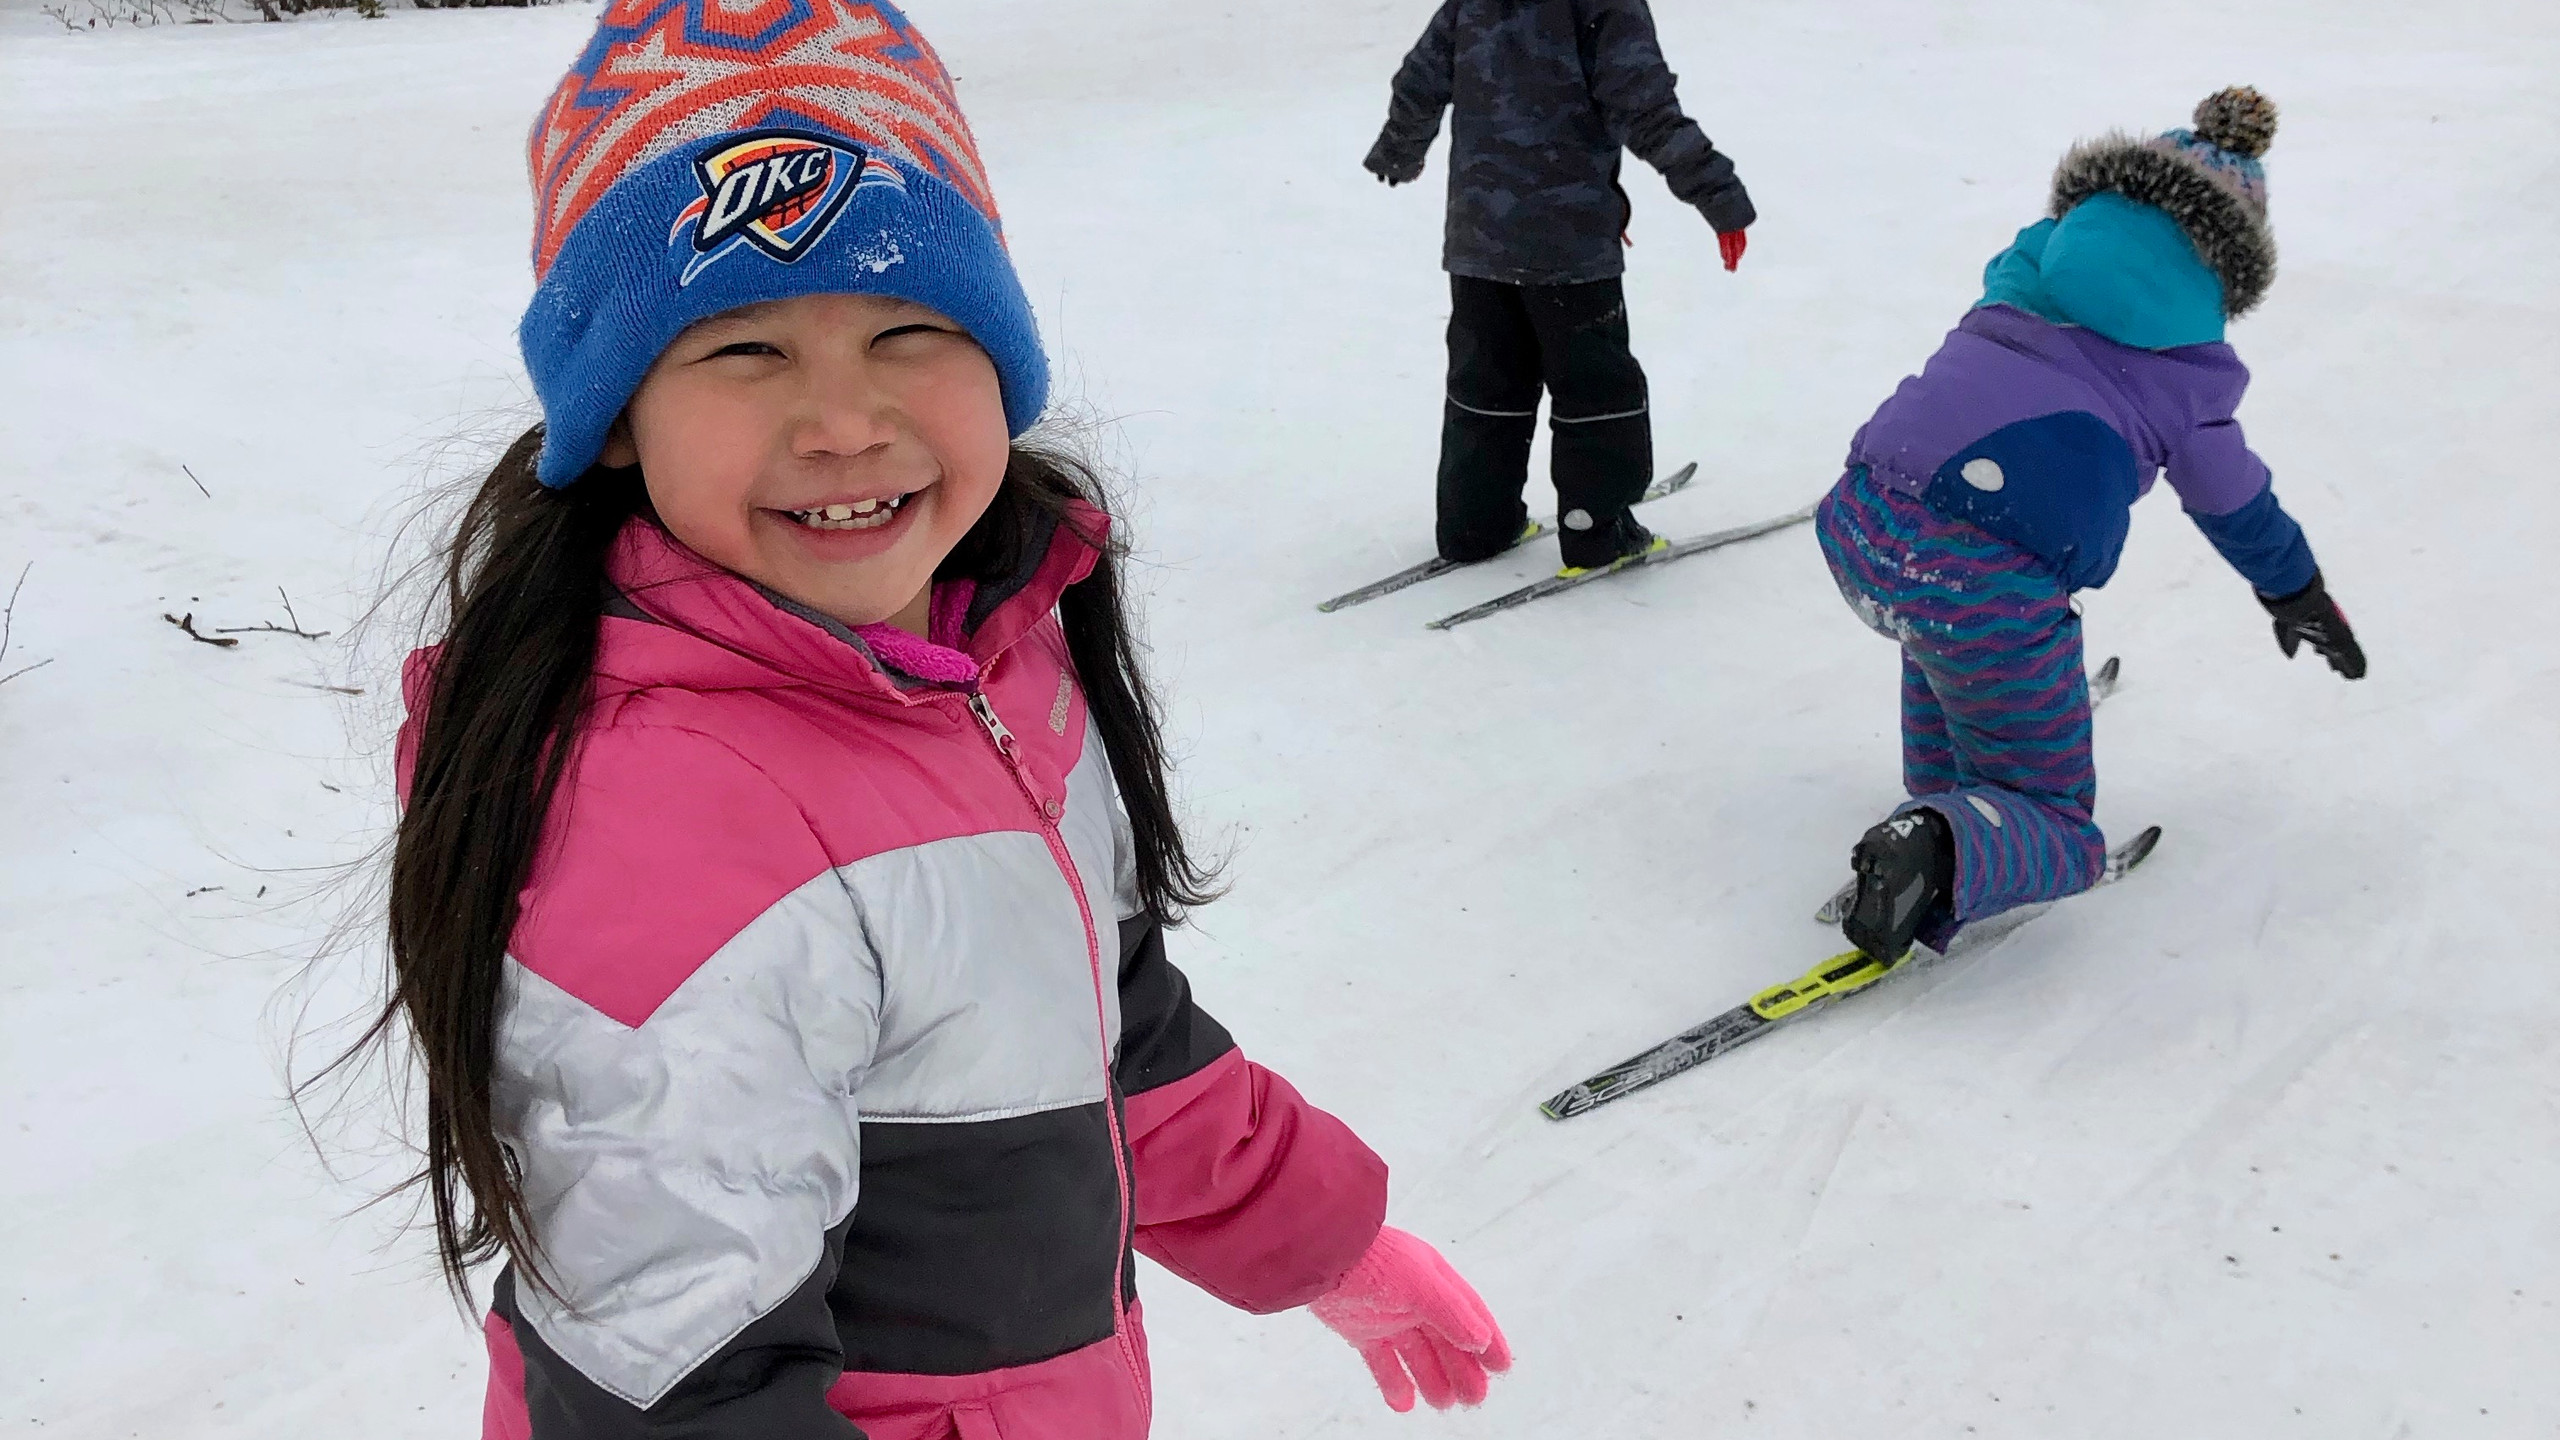 Ramona knows that skiing and smiling go hand-in-hand